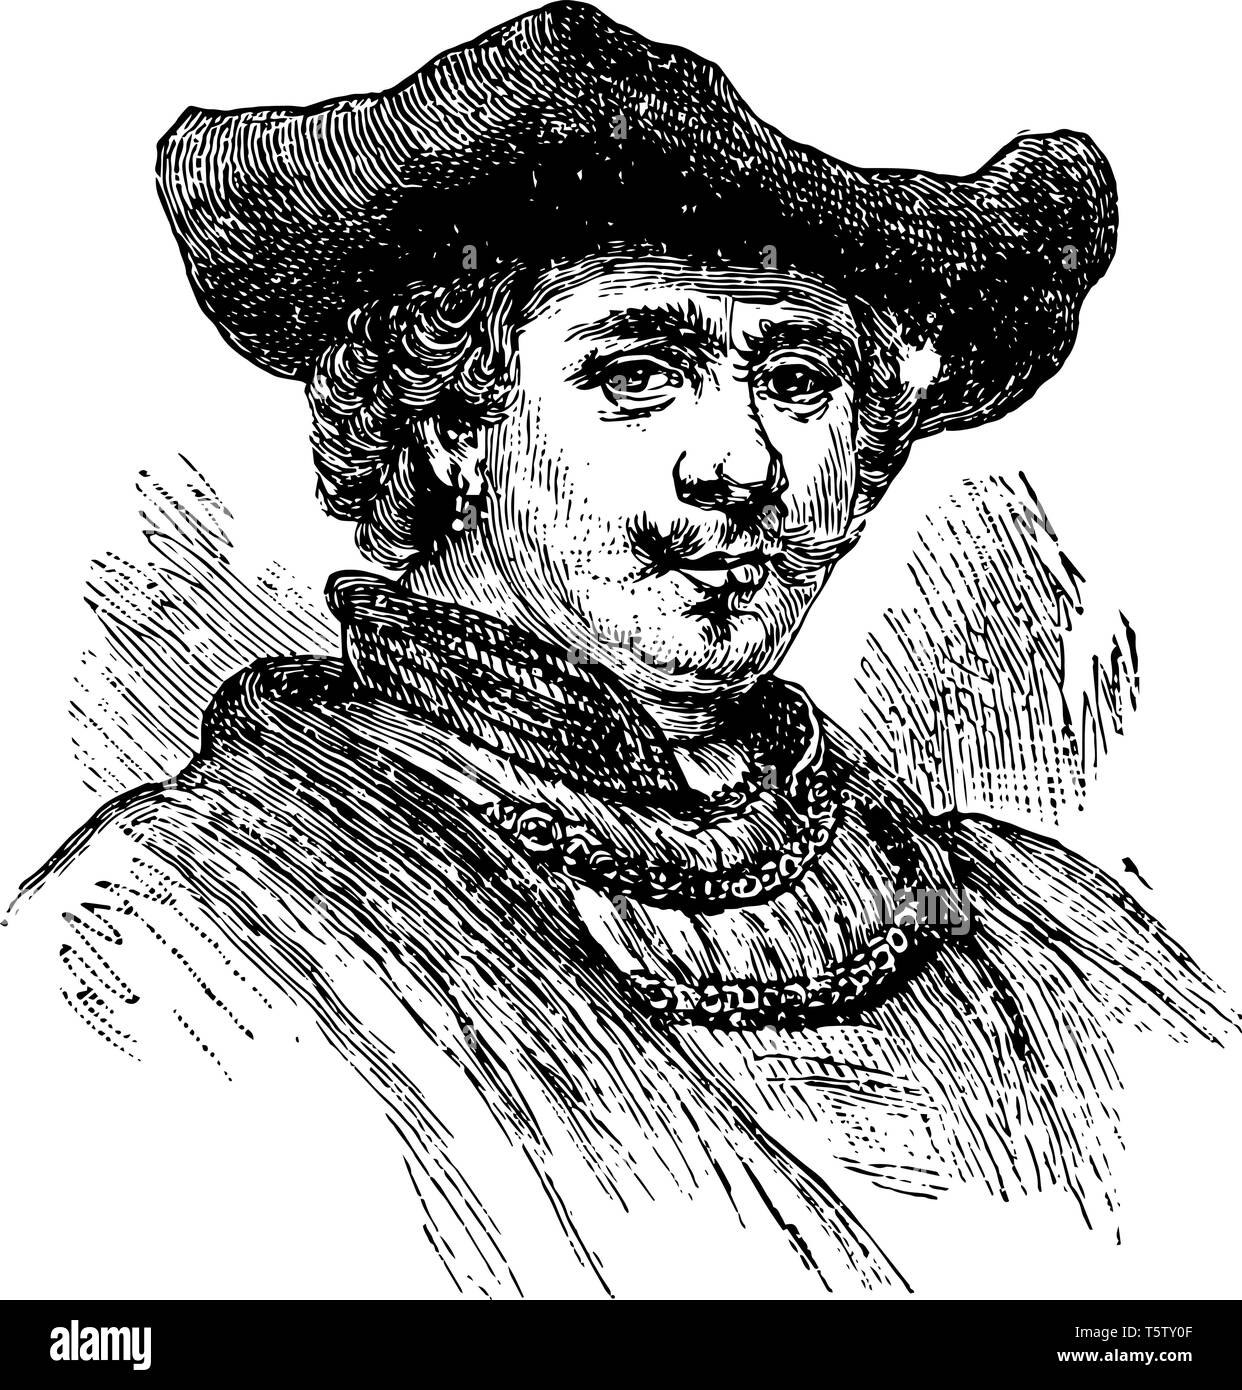 Rembrandt Van Ryn 1606 to 1669 he was a Dutch draughtsman painter and printmaker vintage line drawing or engraving illustration - Stock Vector